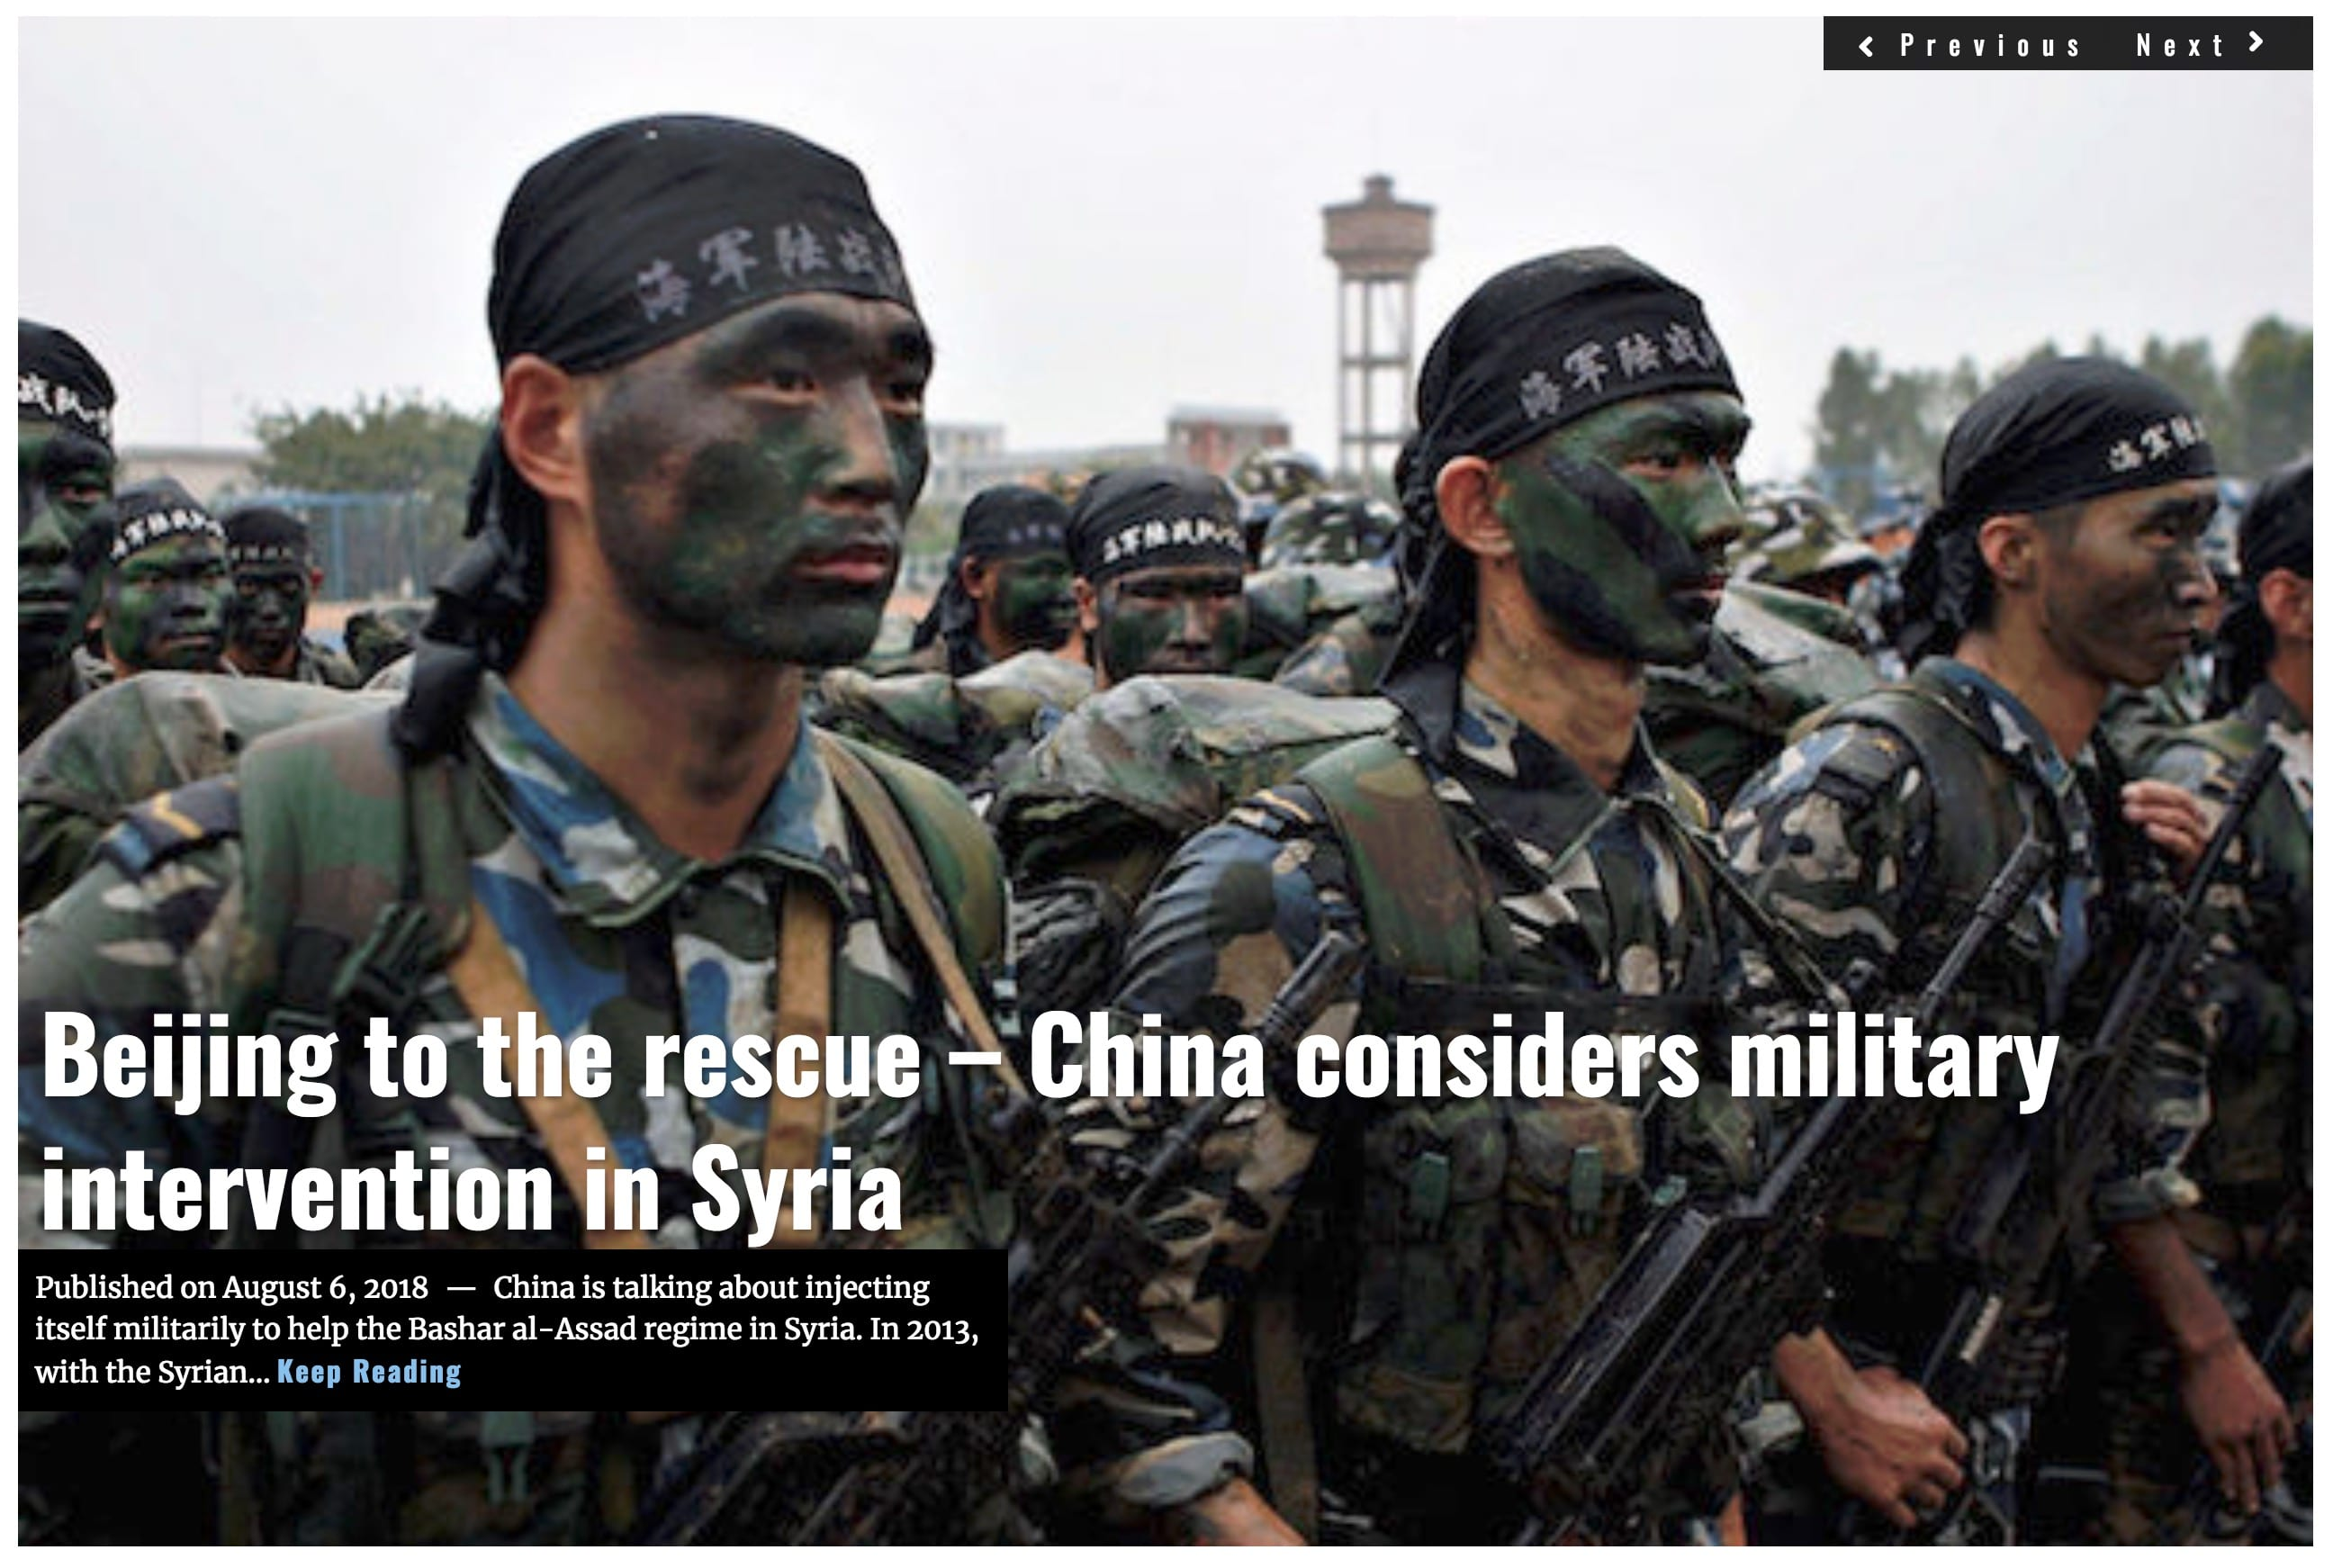 Image Lima Charlie News Headline Beijing to the Rescue - China Syria AUG 6 2018